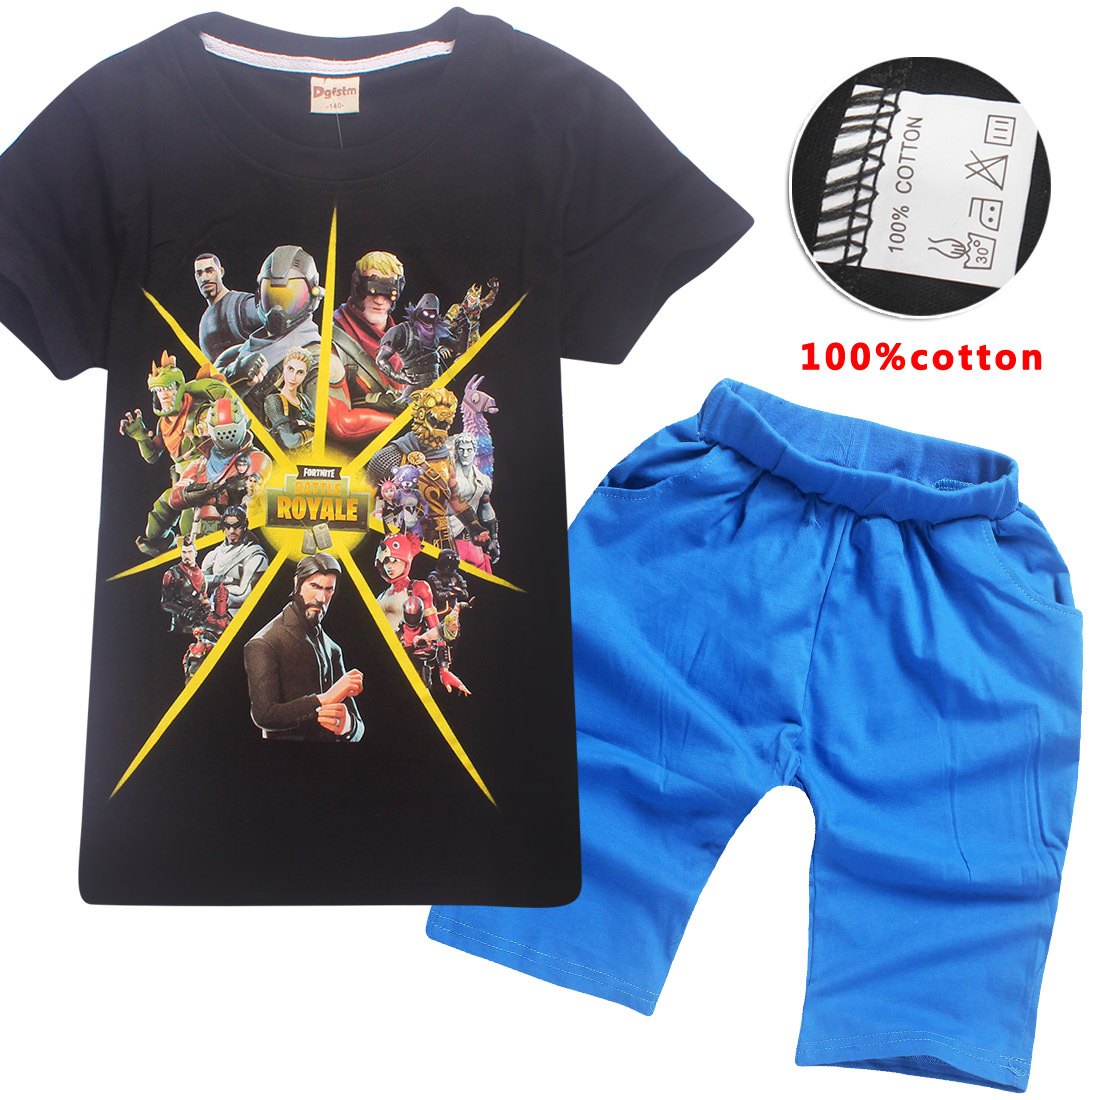 Z&Y 6-14Years Bobo Choses 2018 Casual Children Clothing Battle Royale Fortnite Shirt Top and Shorts Set Childrens Clothing Nova